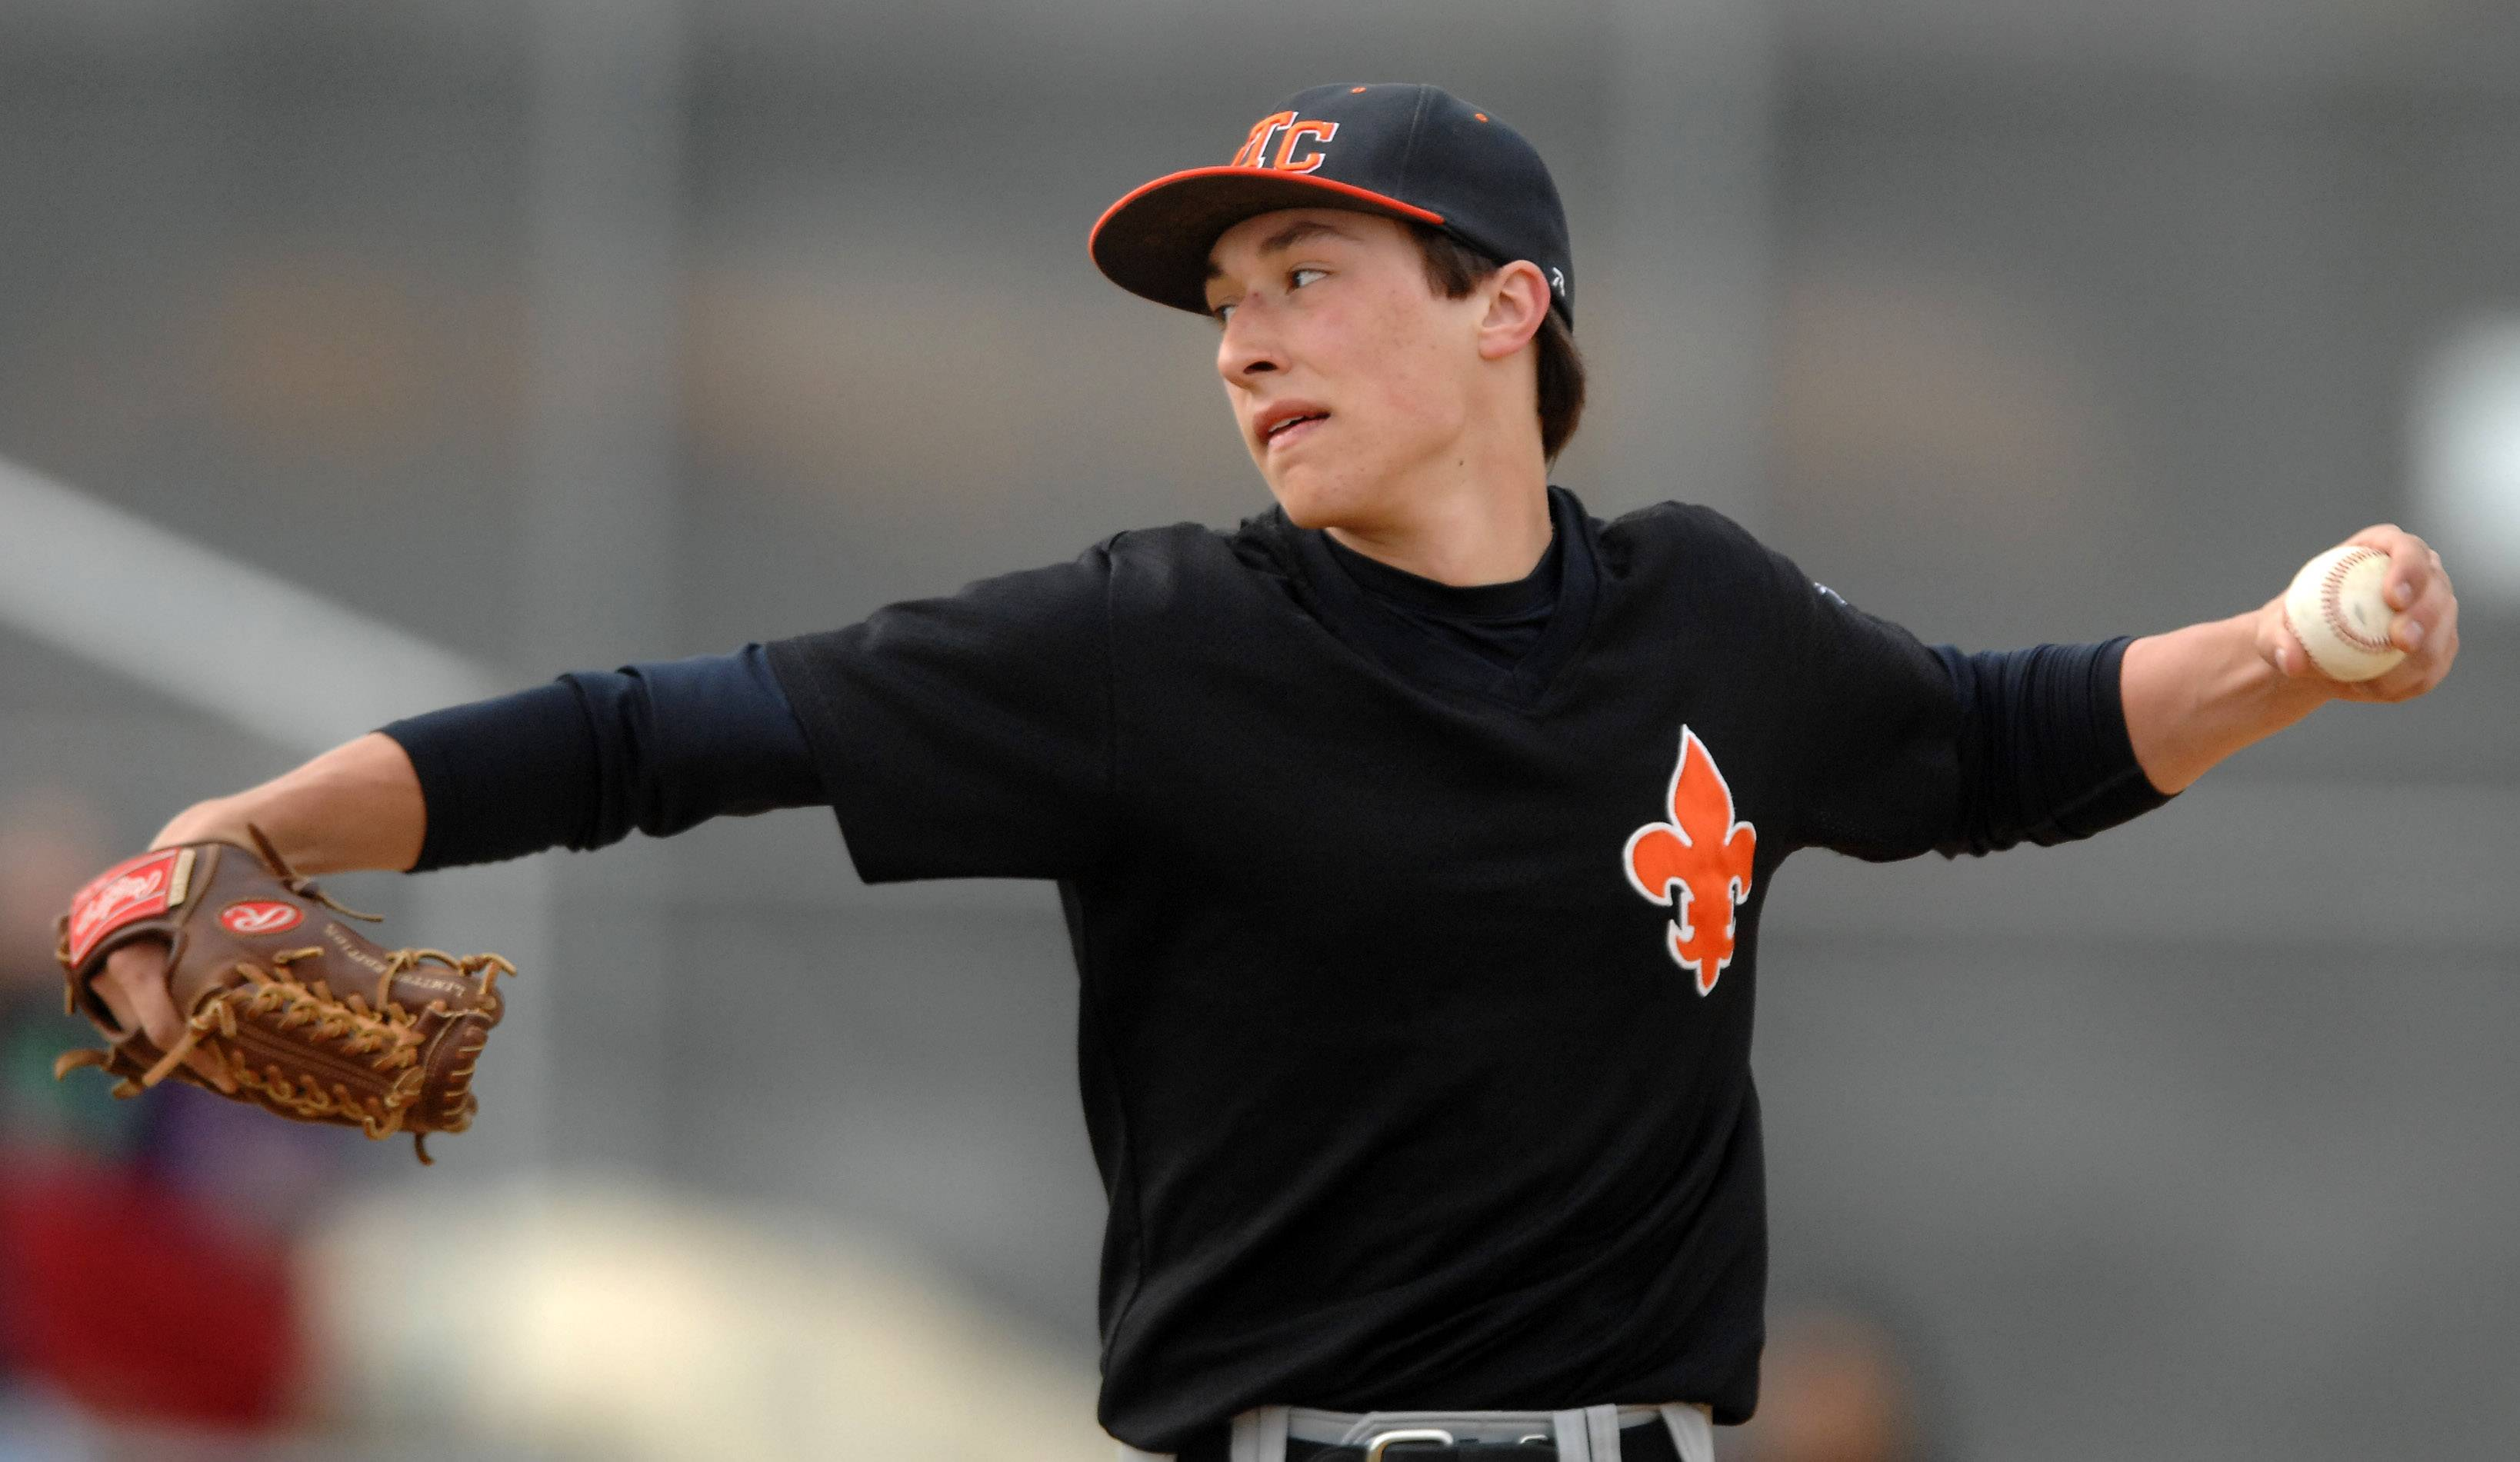 St. Charles East's Austin Regelbrugge (3) delivers a pitch against Batavia during Thursday's game in Batavia.